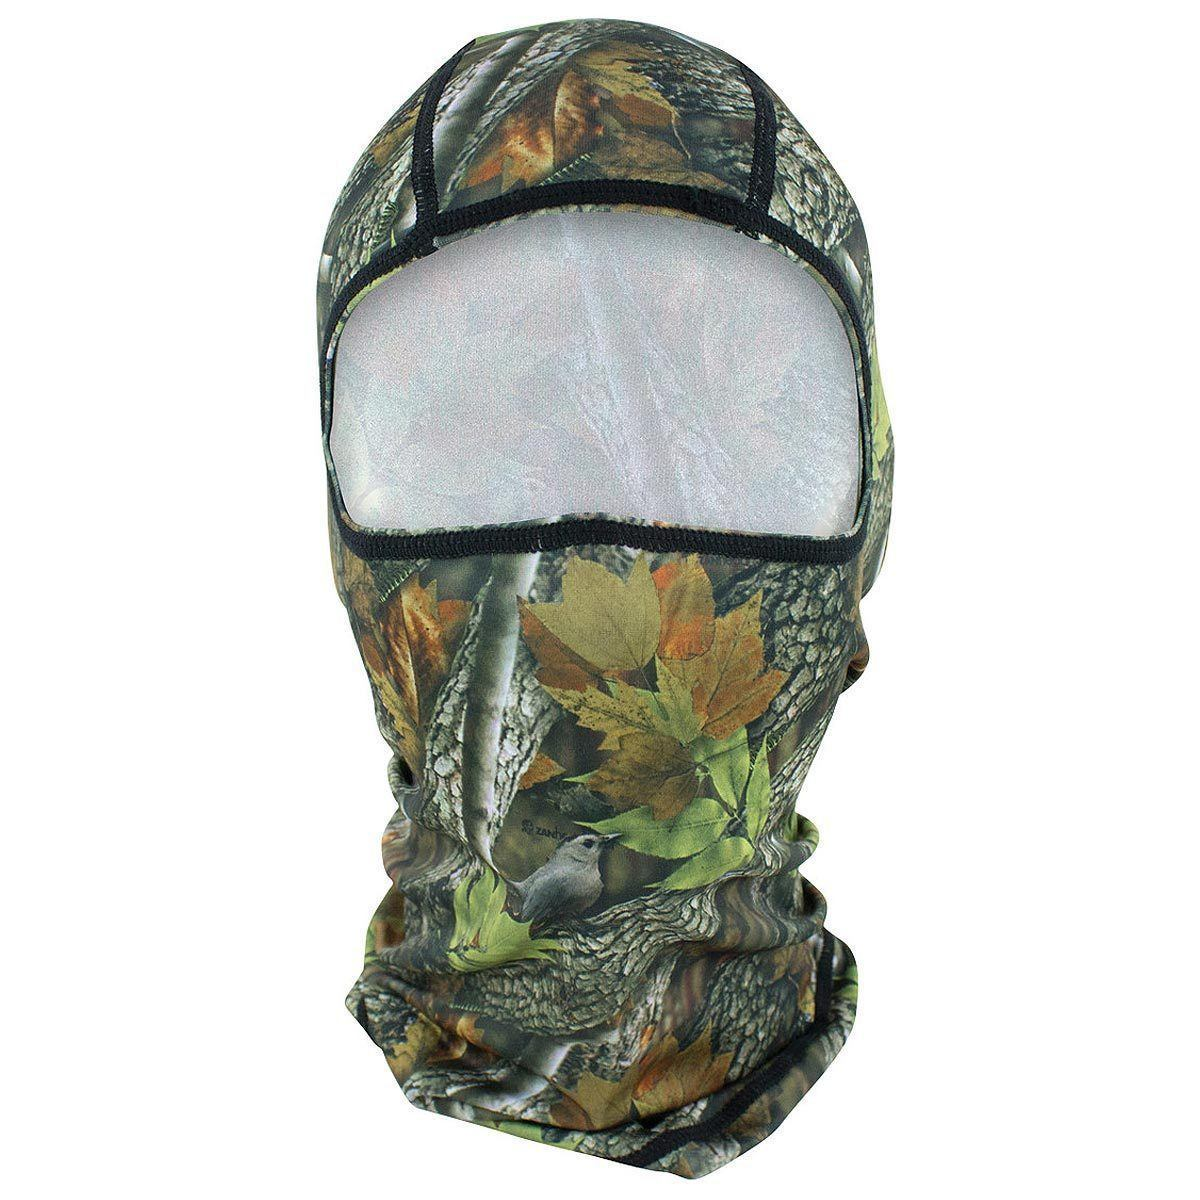 Zan Headgear Forest Camo Balaclava